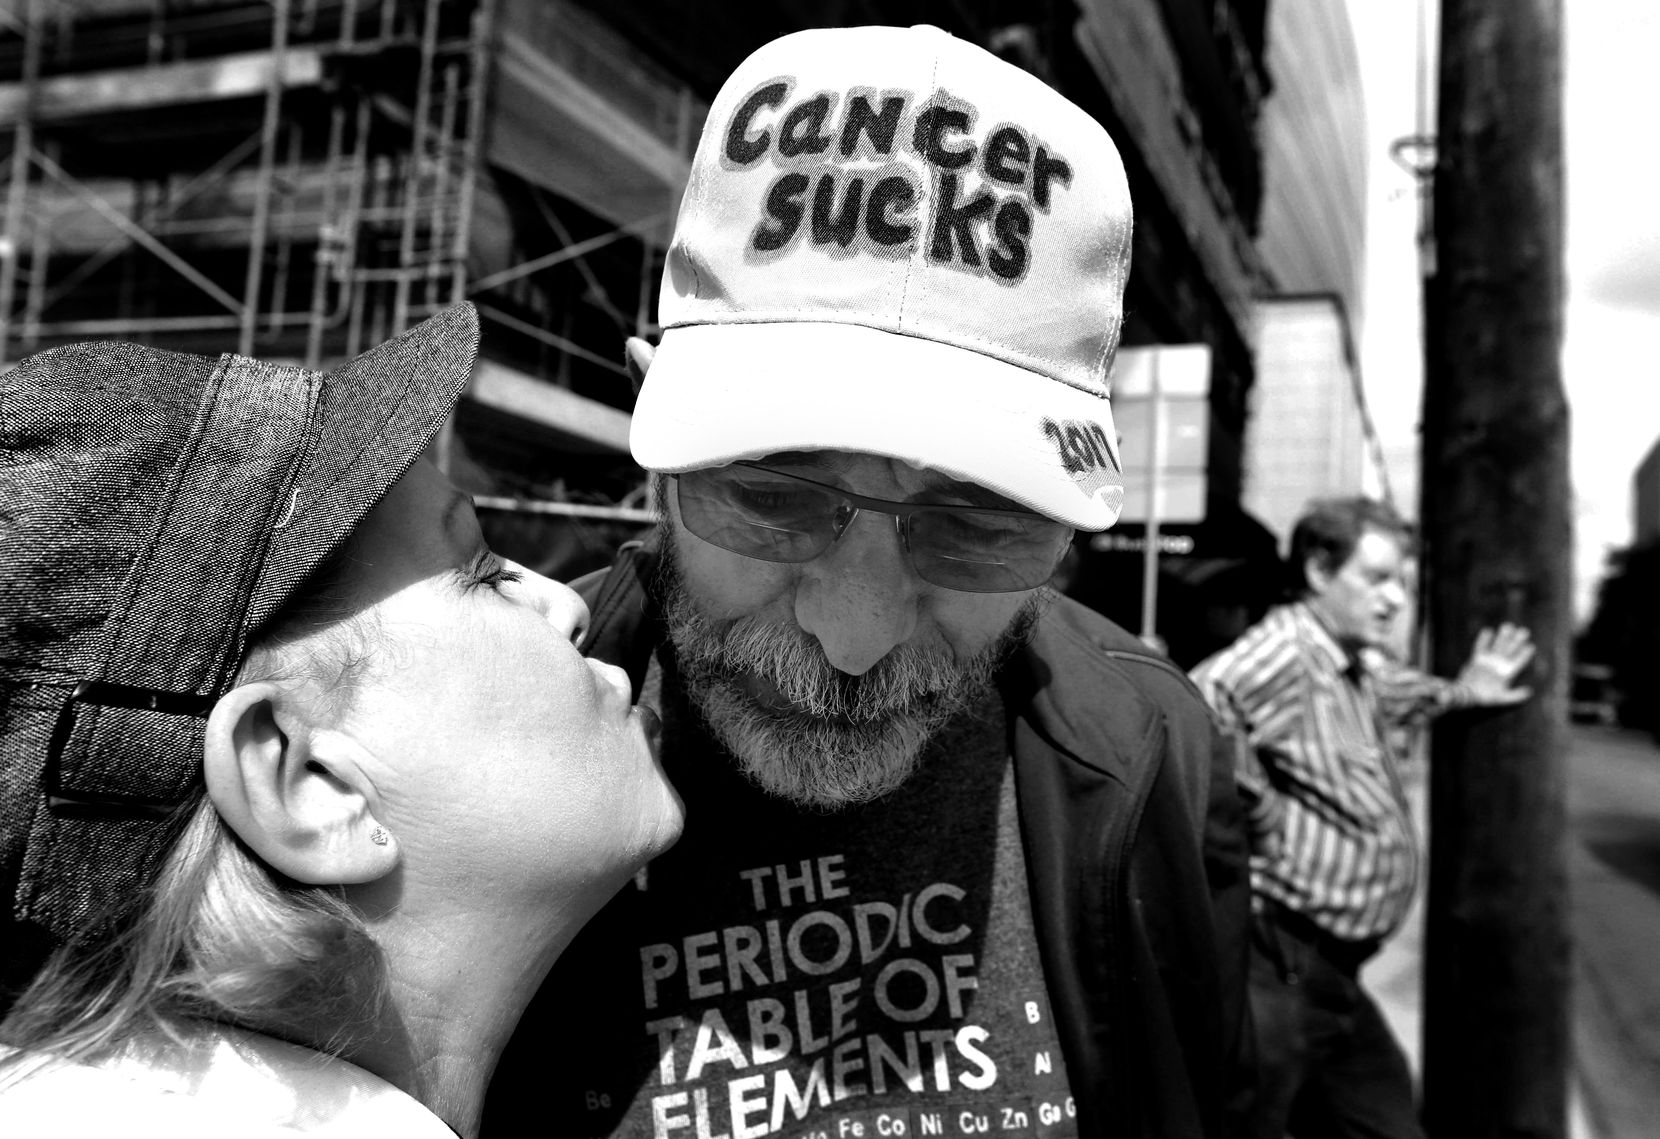 Weiss gets a kiss from his Marni as they wait to cross the street near the hospital. (Louis DeLuca/Staff Photographer)